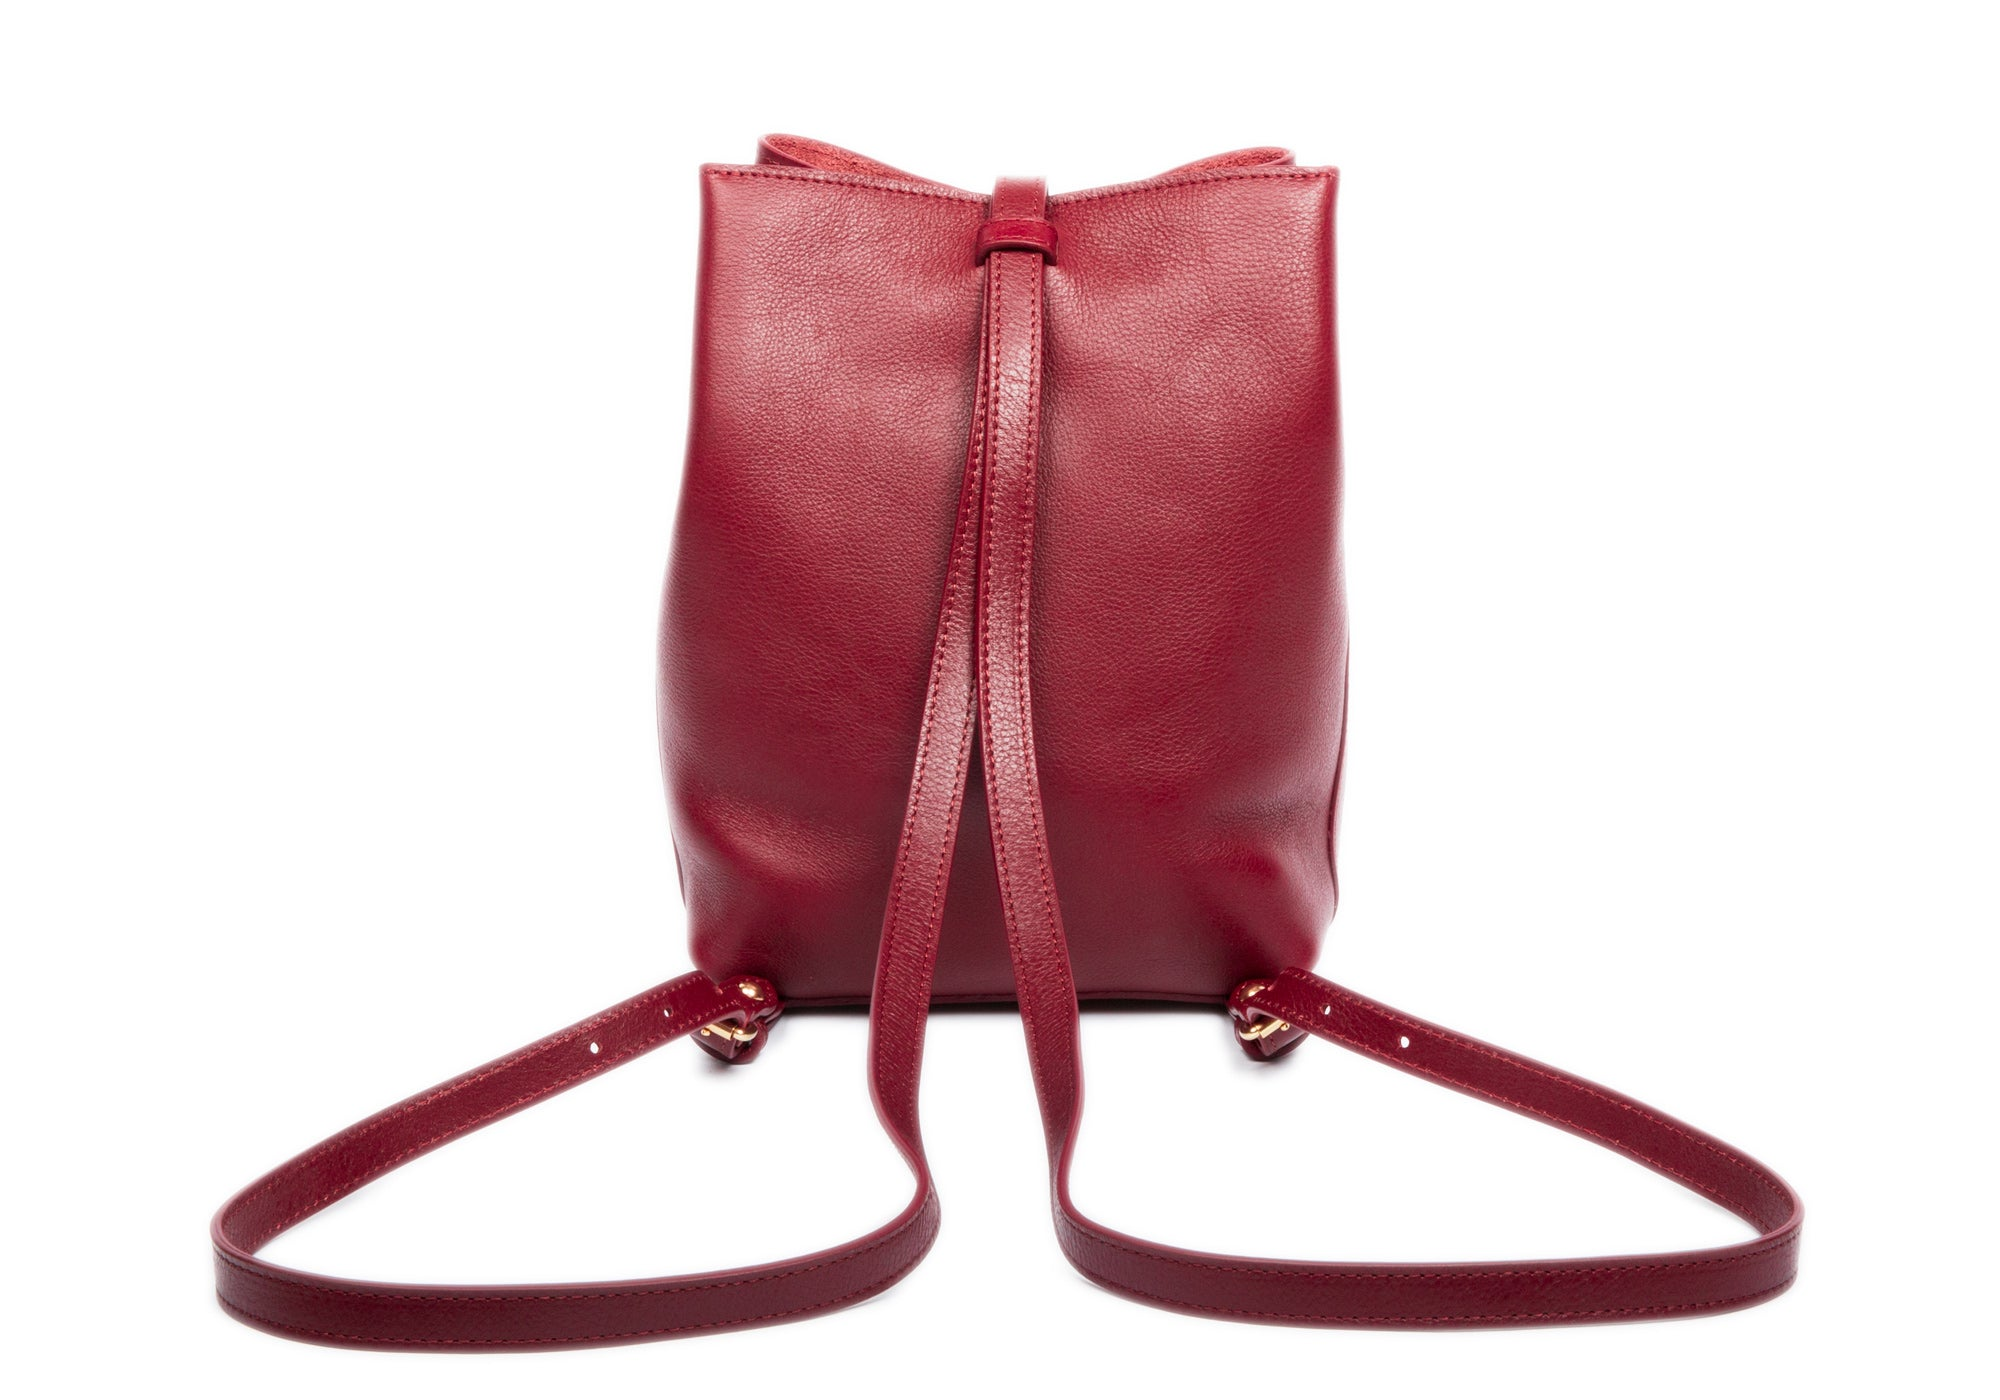 The Mini Sling Backpack Red